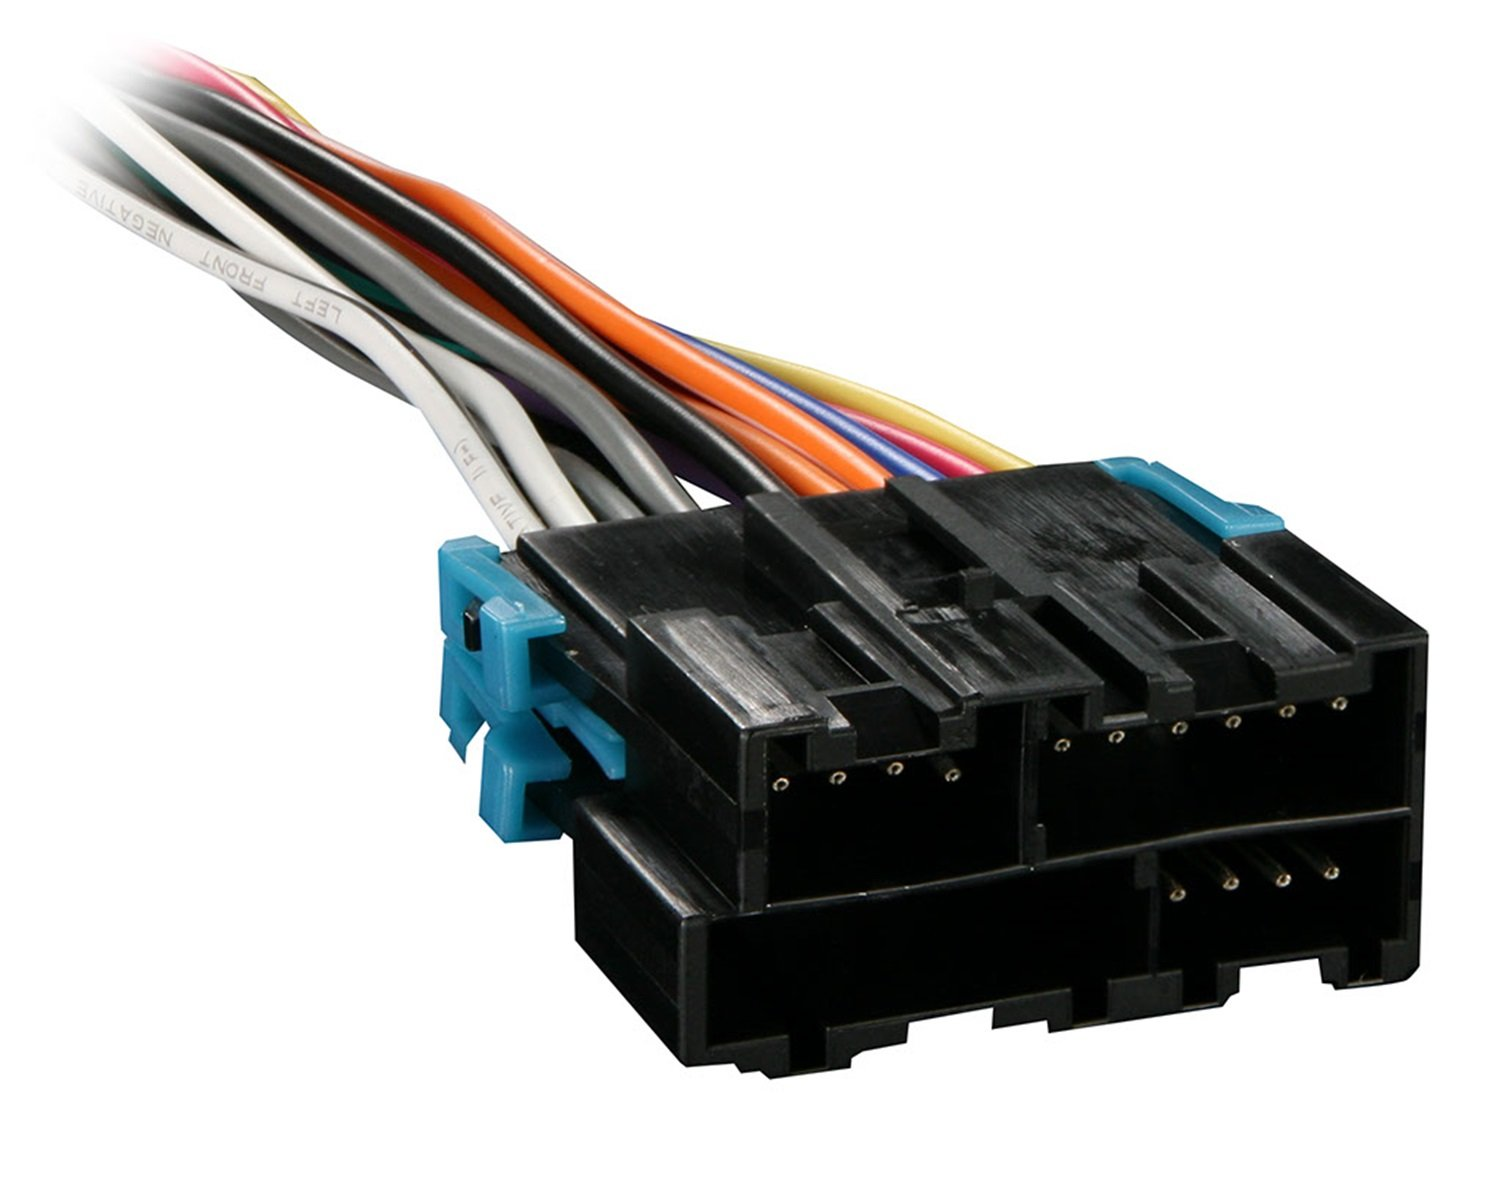 61 CwjZt1hL._SL1500_ radio wiring harnesses amazon com car stereo wiring harness kit at mifinder.co